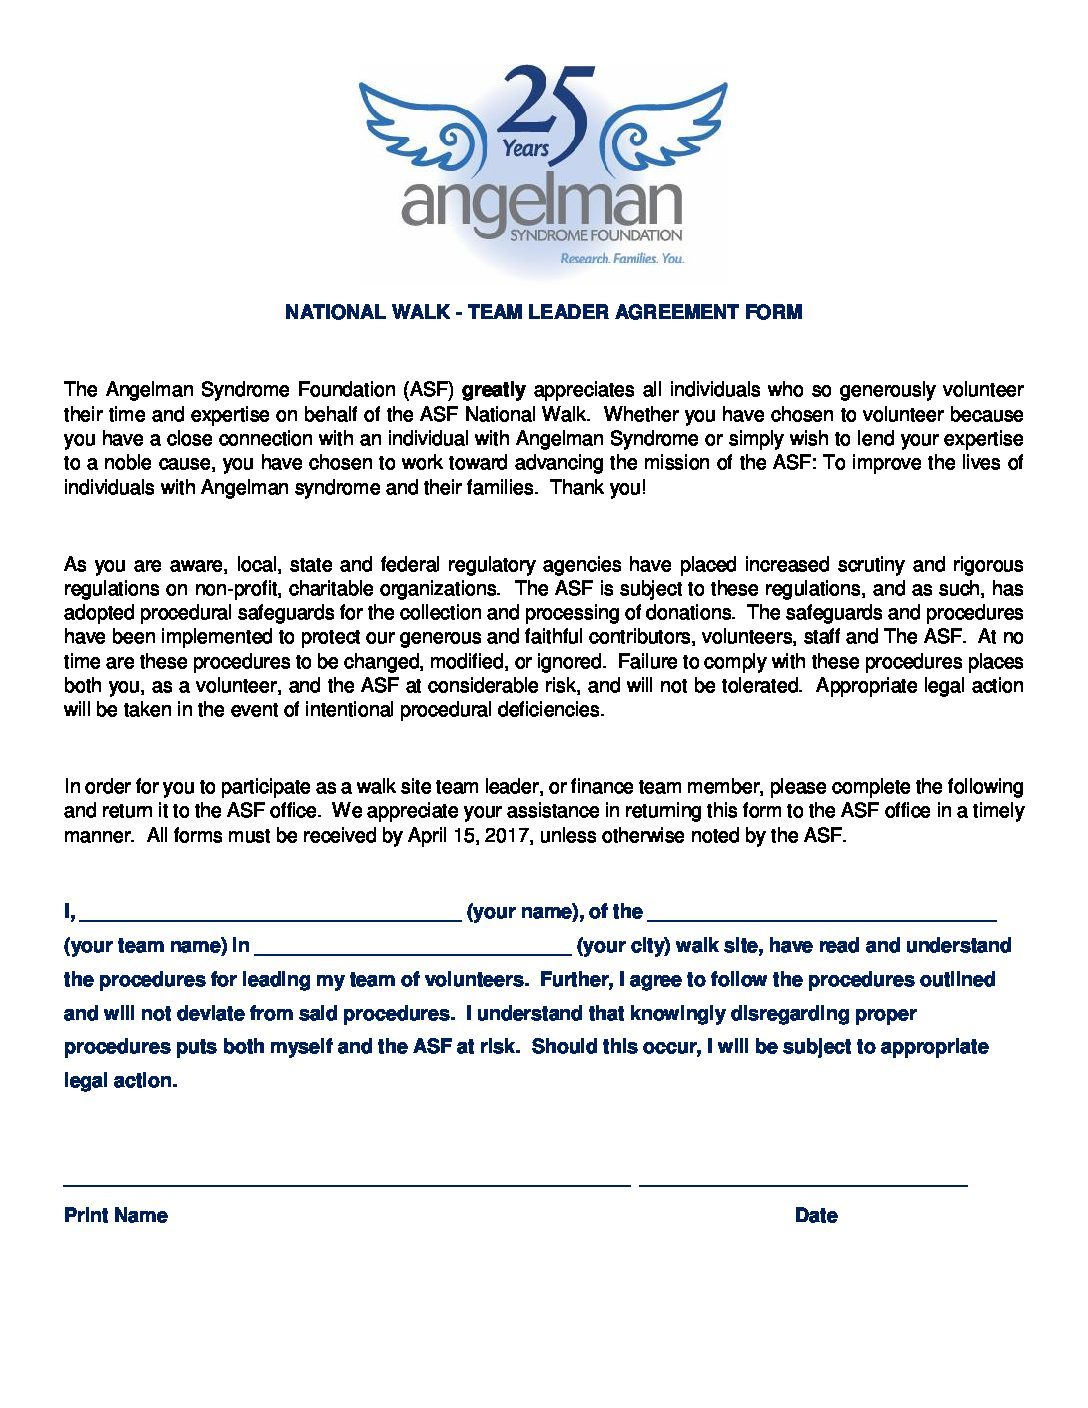 NATIONAL WALK - TEAM LEADER AGREEMENT FORM The Angelman